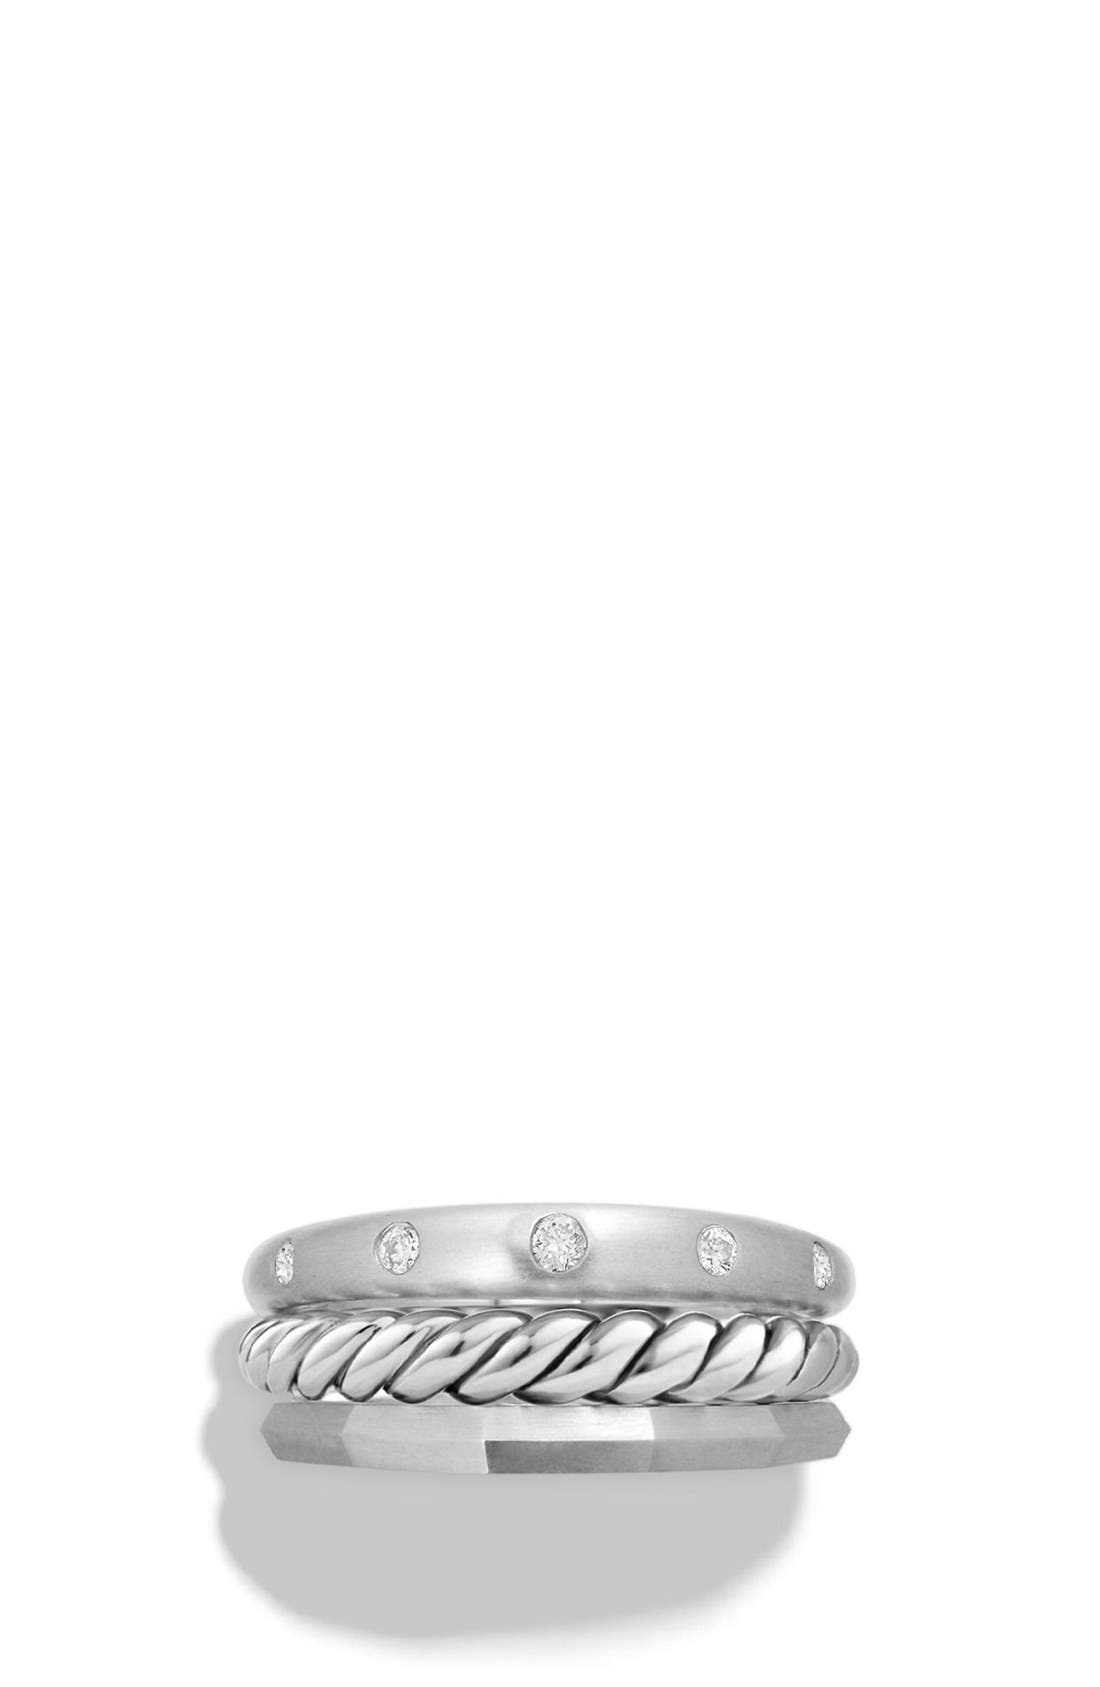 'Stax' Ring with Diamonds,                             Alternate thumbnail 4, color,                             SILVER